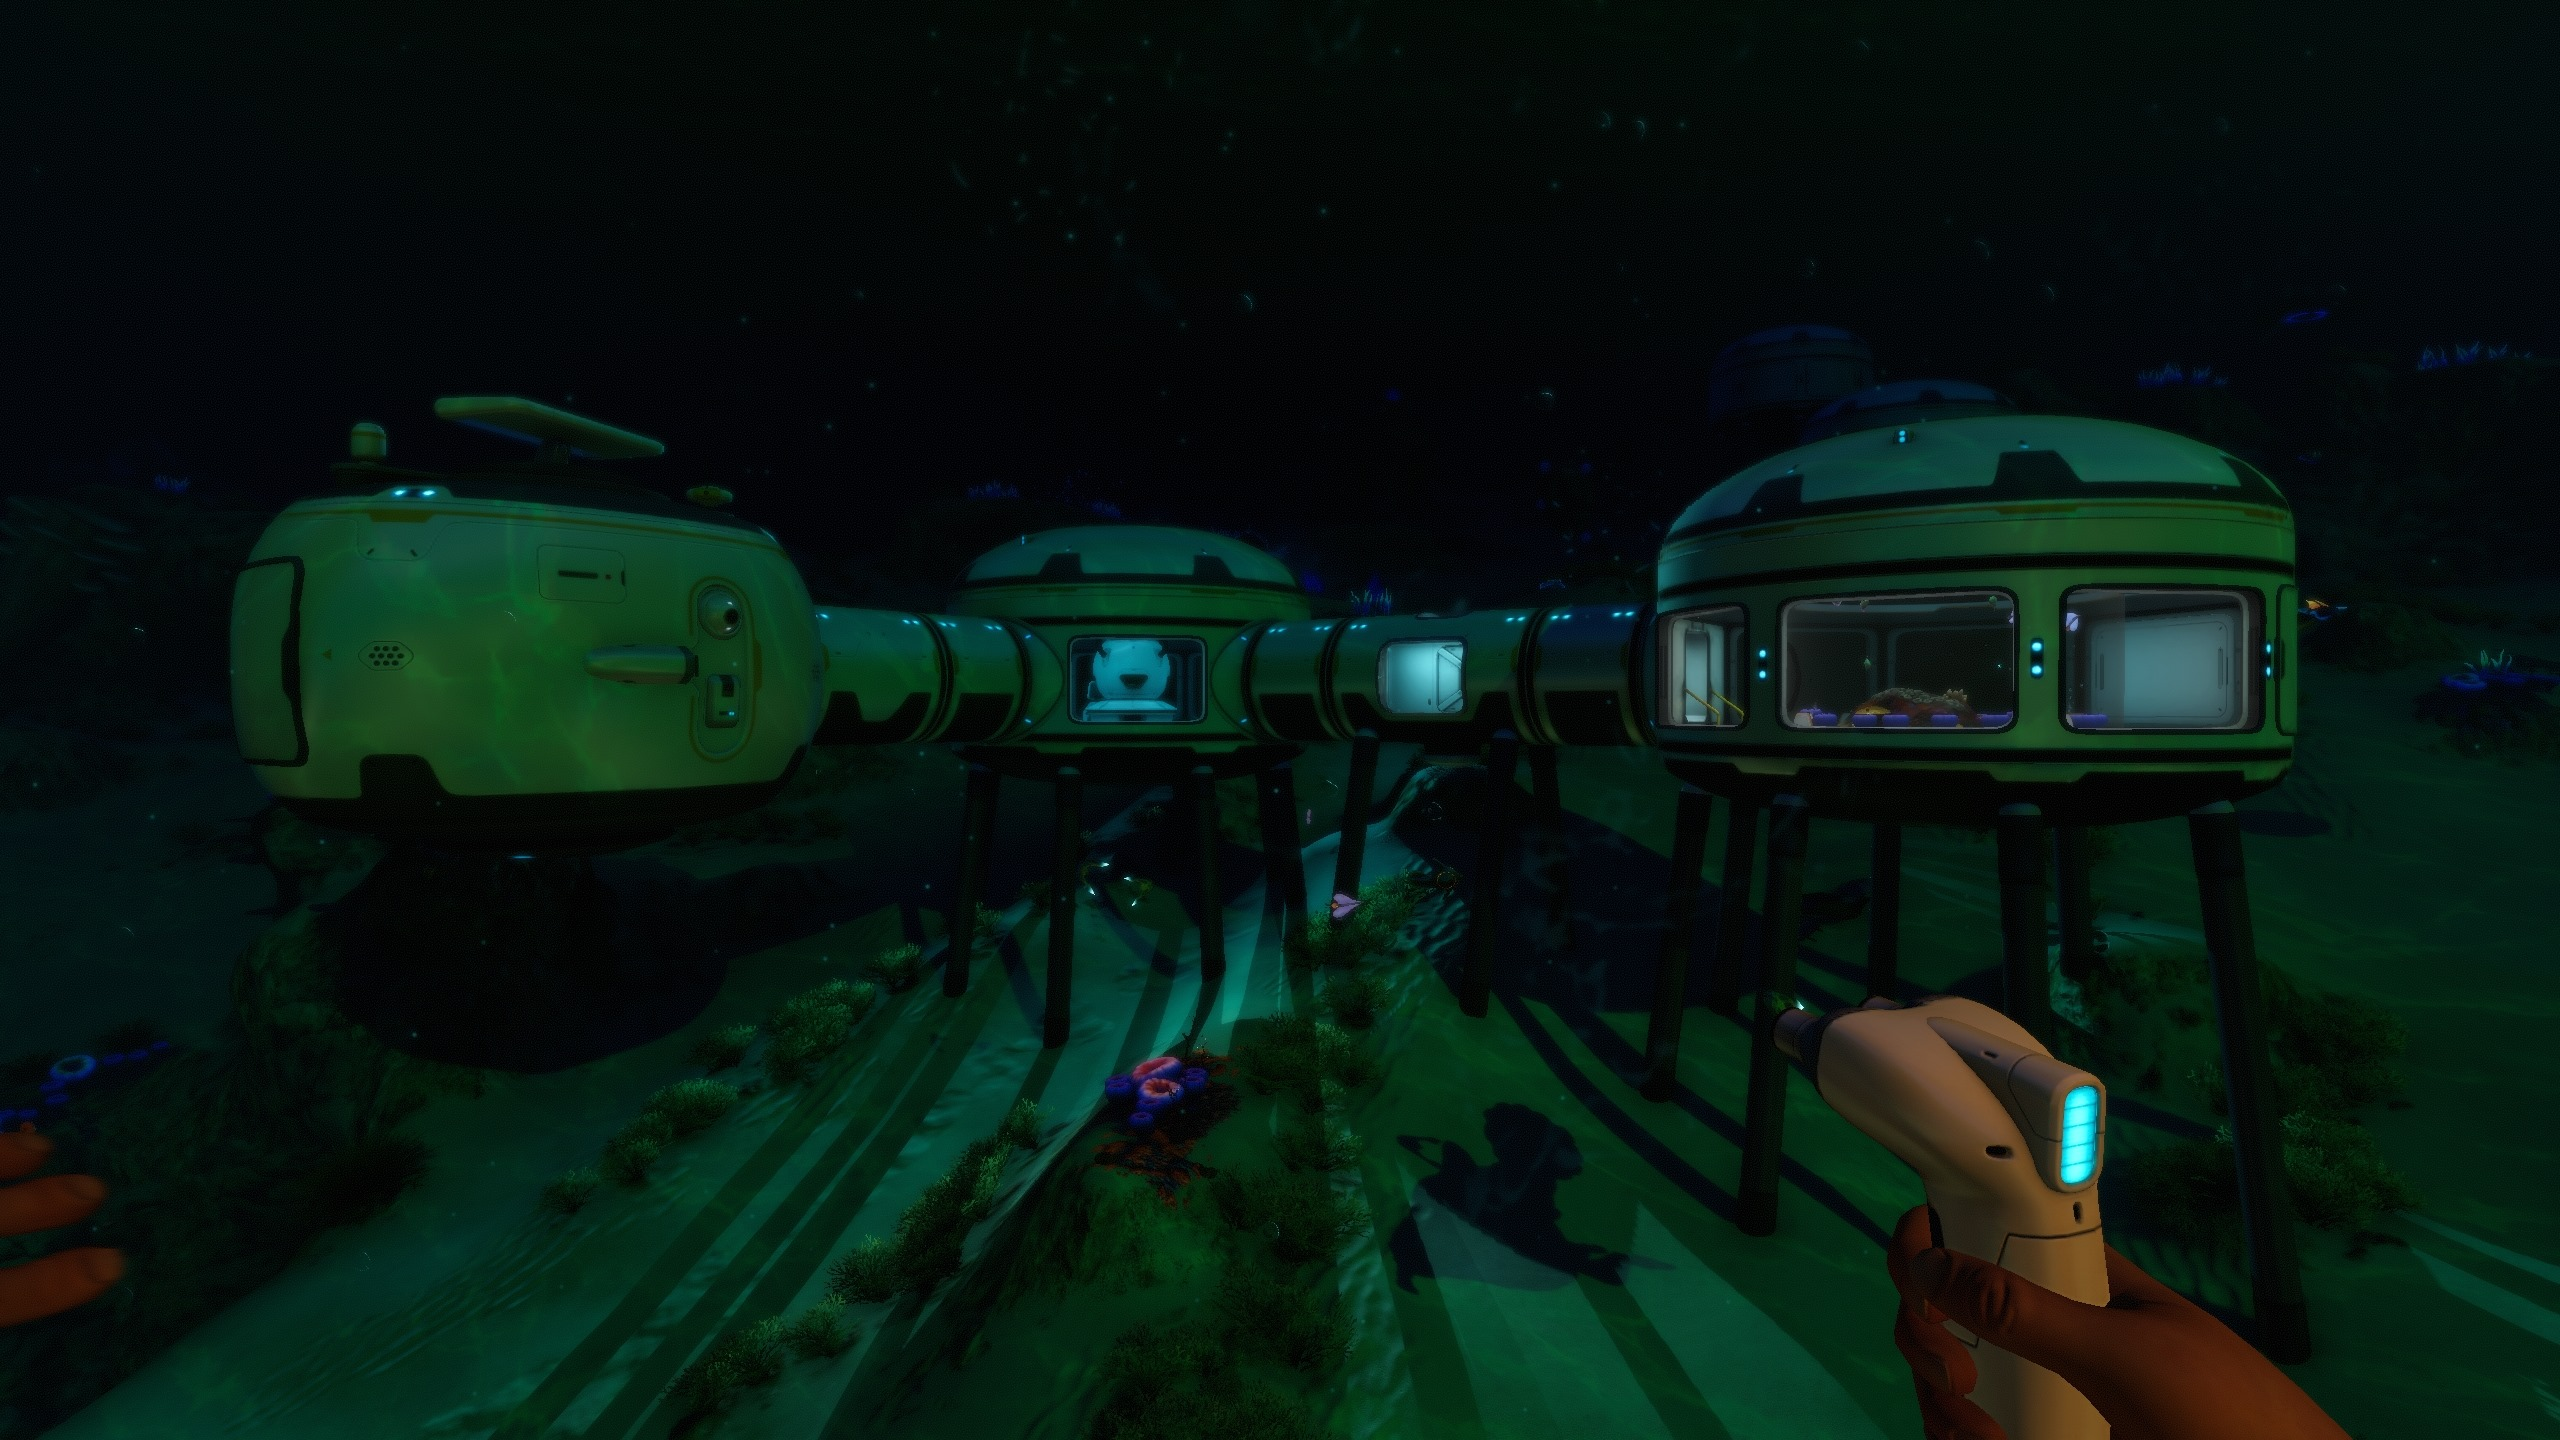 Steam Community Guide Deep Base 9 Build Self Sustaining Bases All Over The Map With Just 48 Inventory Slots Check our subnautica map out now for more information! steam community guide deep base 9